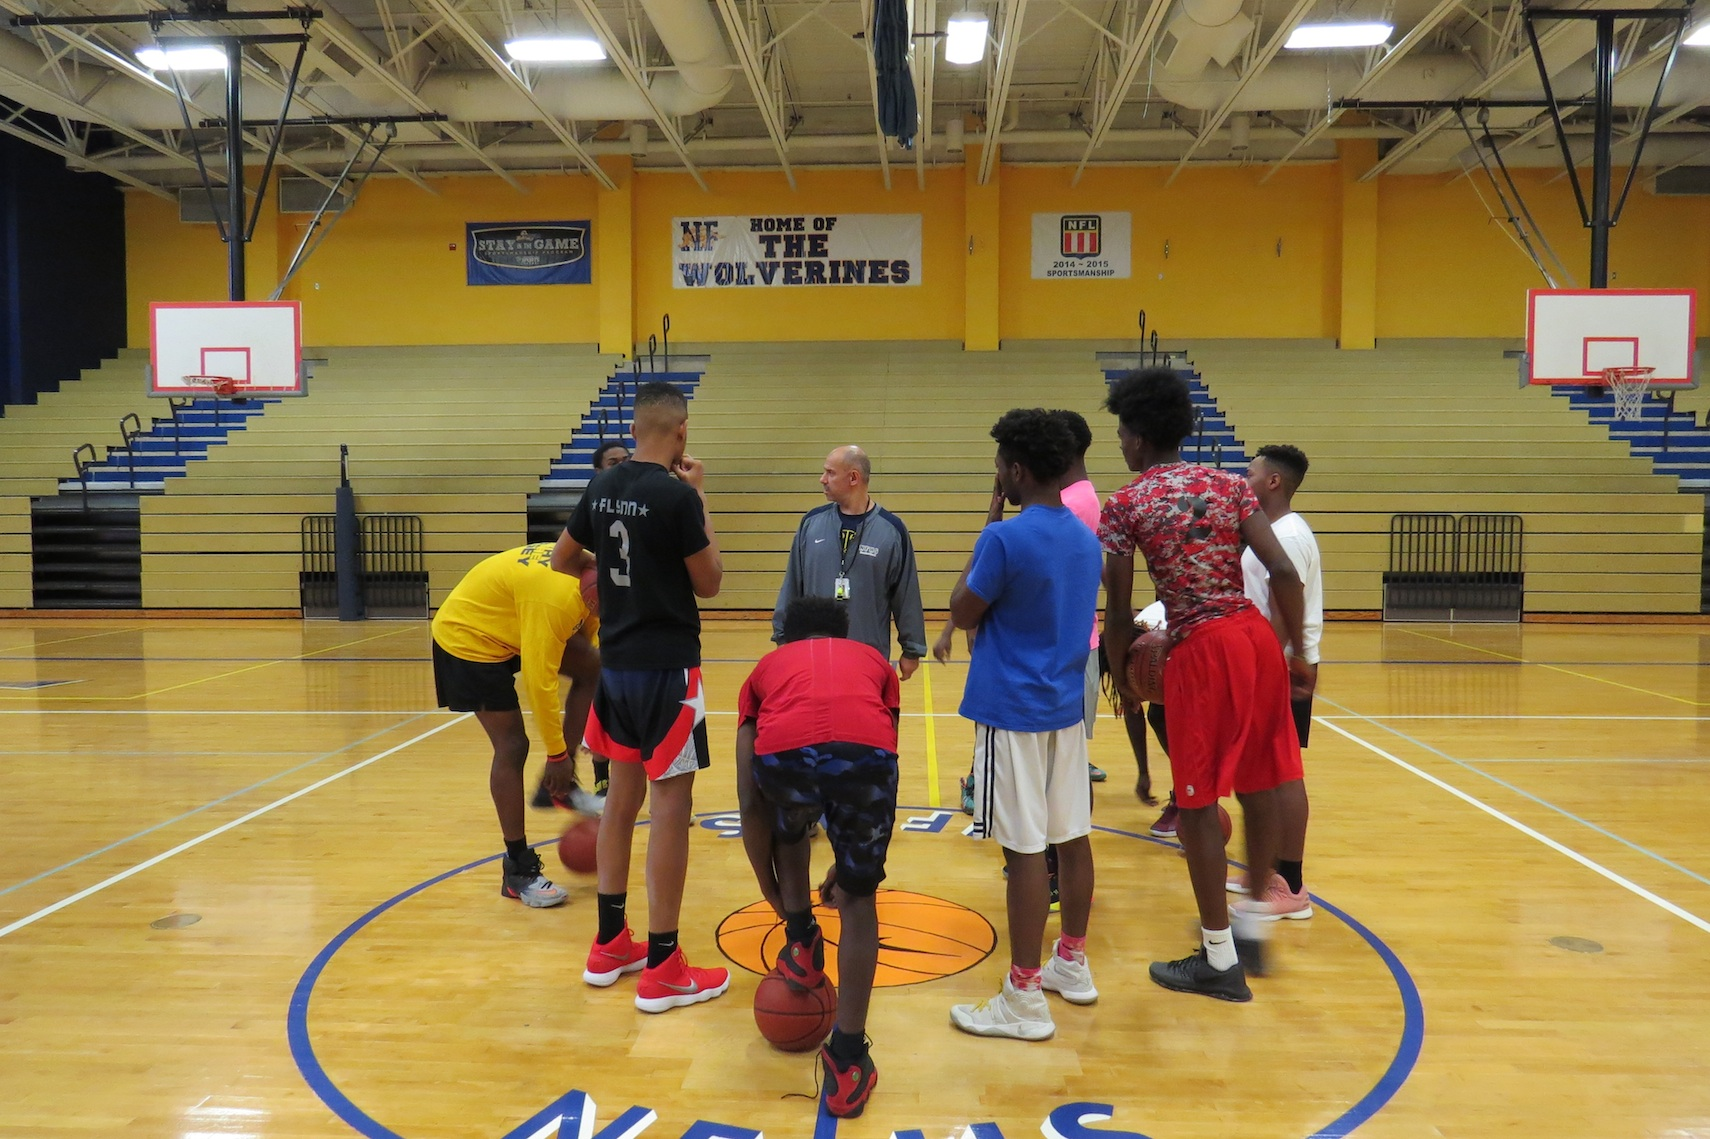 Coach Sal Constantino addresses his team prior to Tuesday's practice. Constantino is now in his eighth year as head coach of the Niagara Falls program. (Photo by David Yarger)